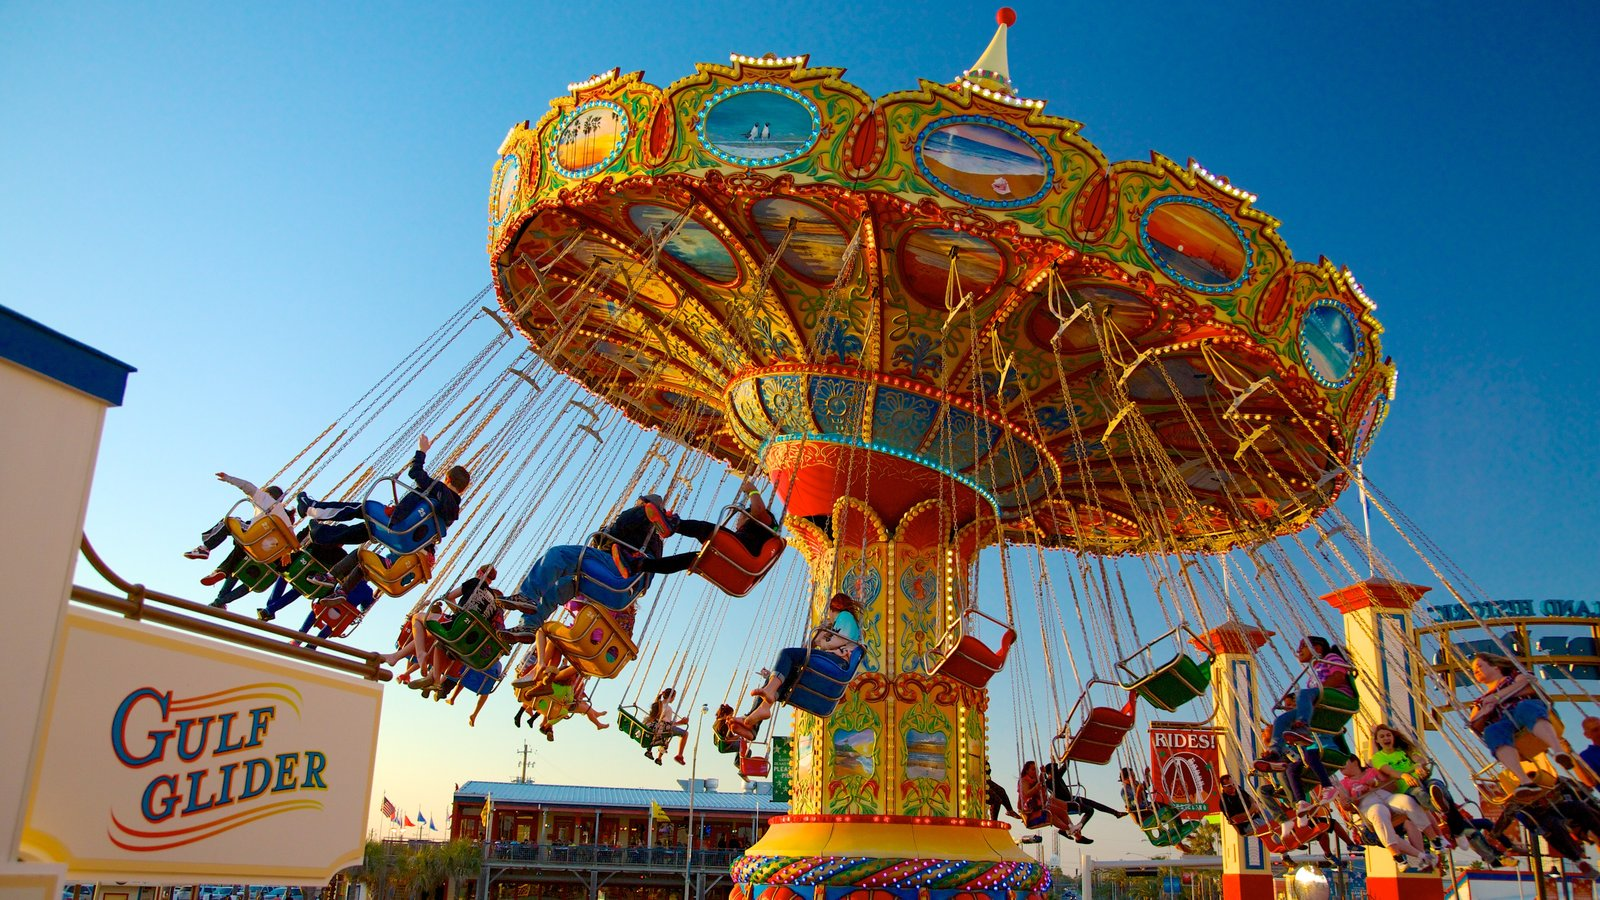 Attraction Pictures: View Images of Galveston